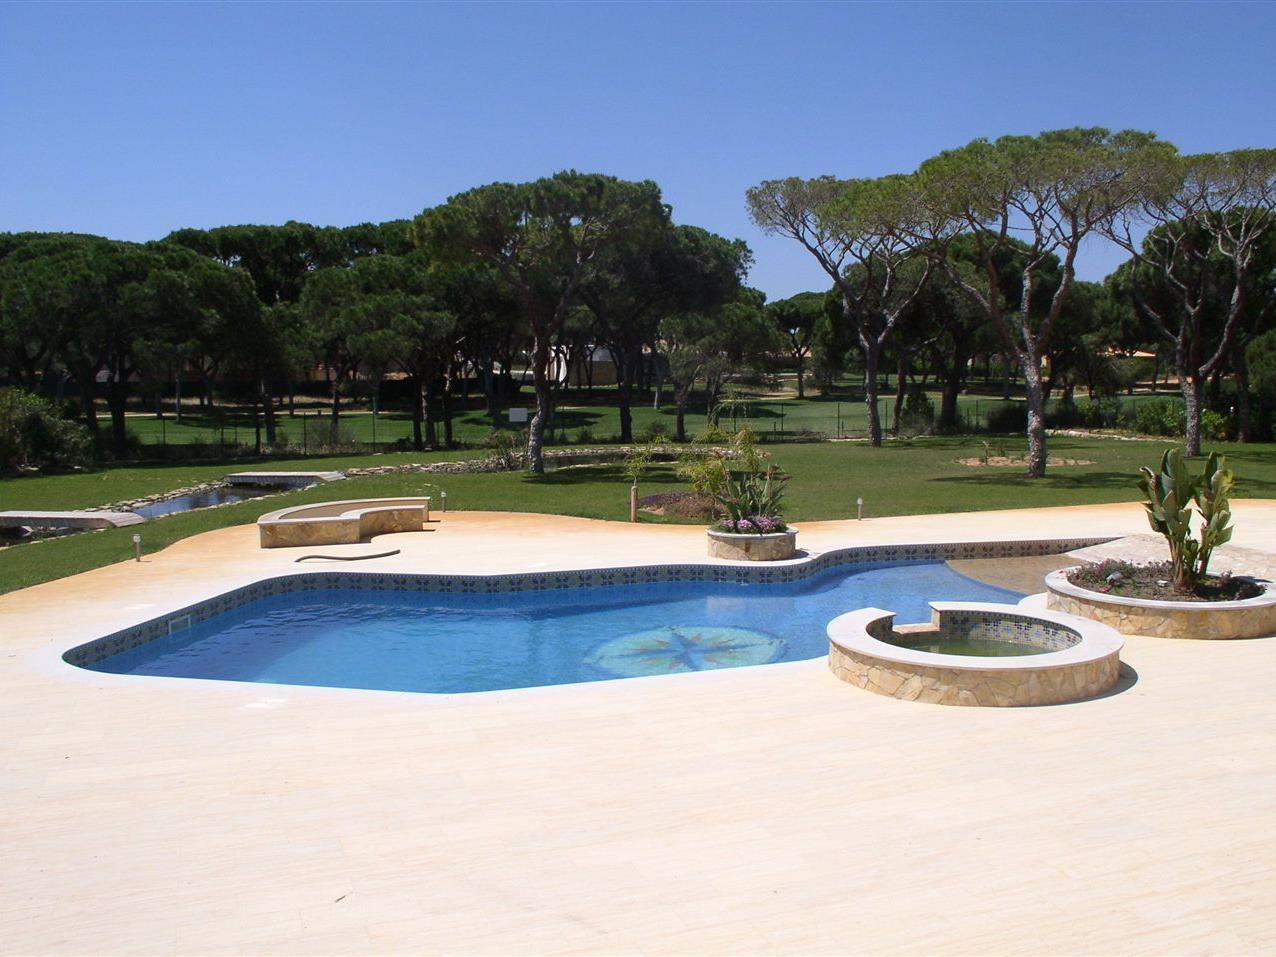 Maison unifamiliale pour l Vente à House, 9 bedrooms, for Sale Loule, Algarve Portugal